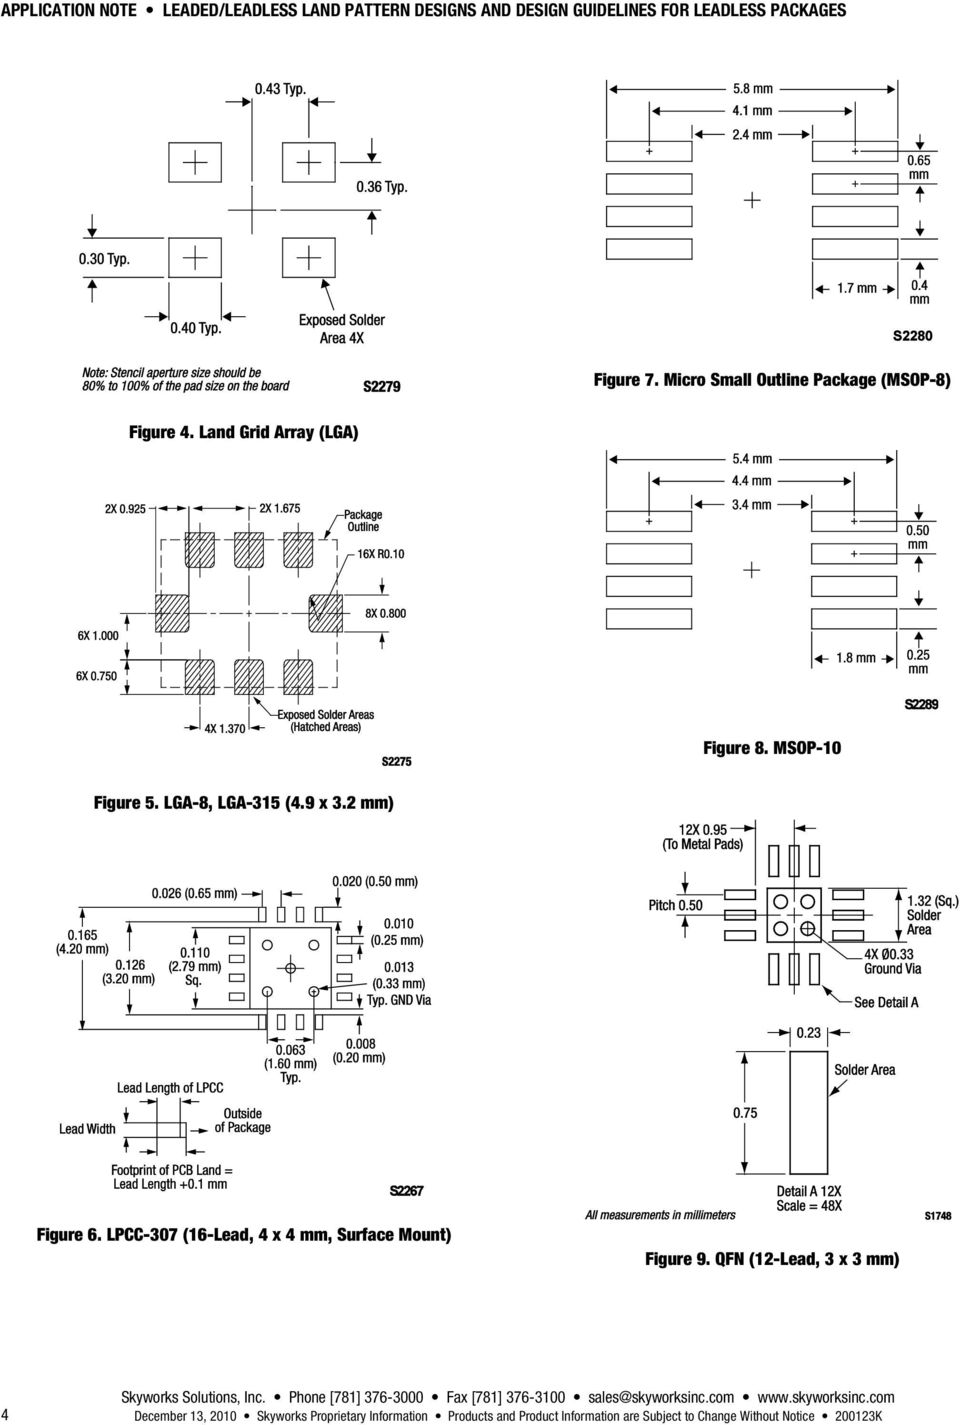 LGA-8, LGA-315 (4.9 x 3.2 mm) Figure 6. LPCC-307 (16-Lead, 4 x 4 mm, Surface Mount) Figure 9.